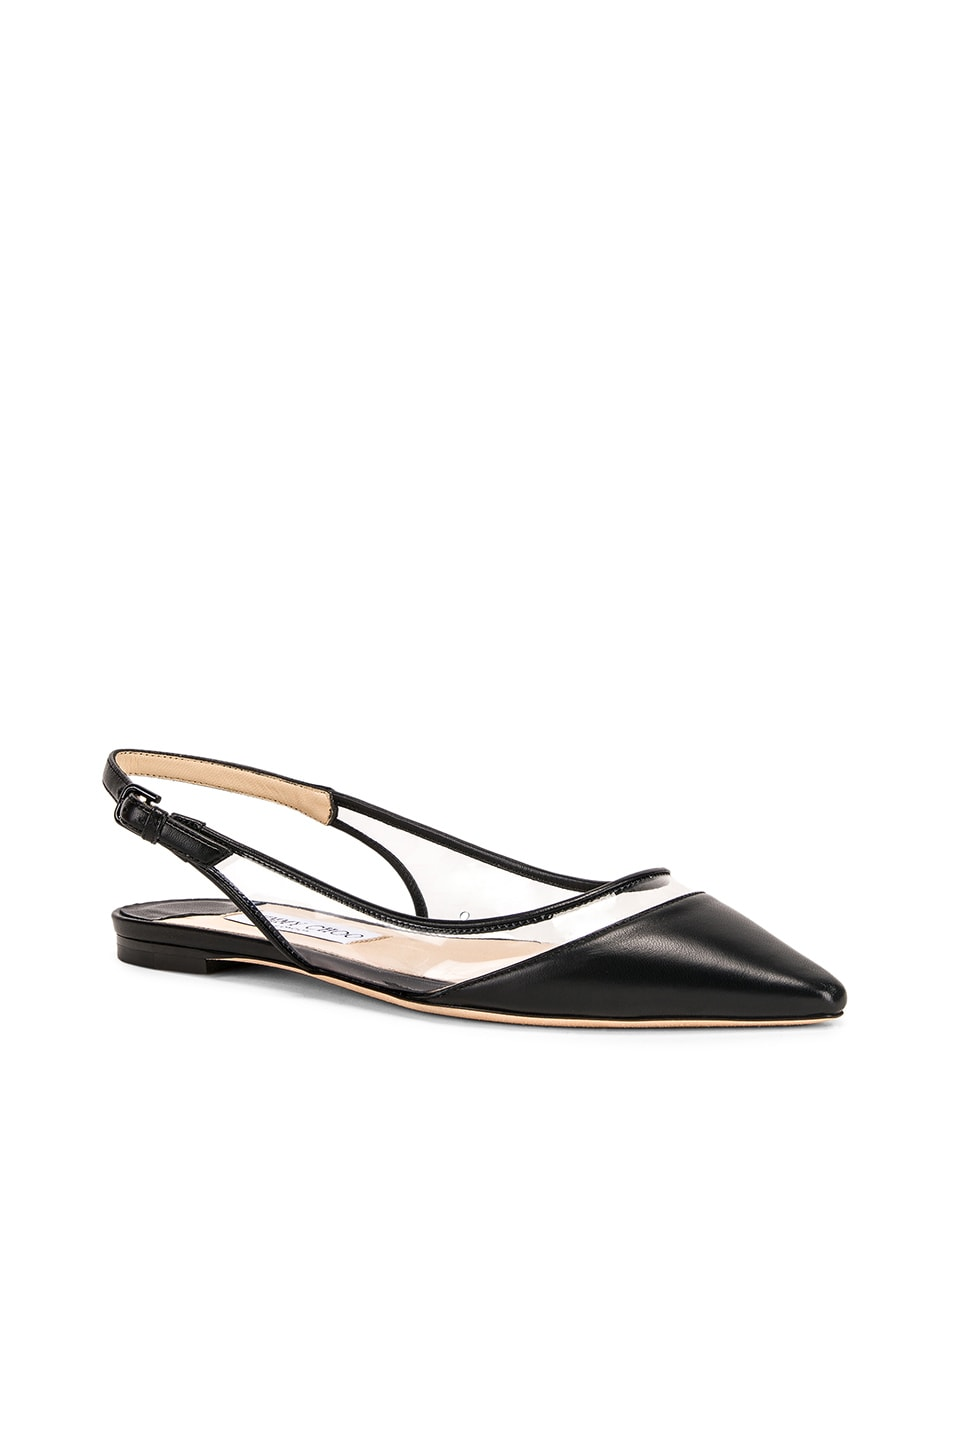 Image 2 of Jimmy Choo Erin Leather Plexi Flat in Black & PVC